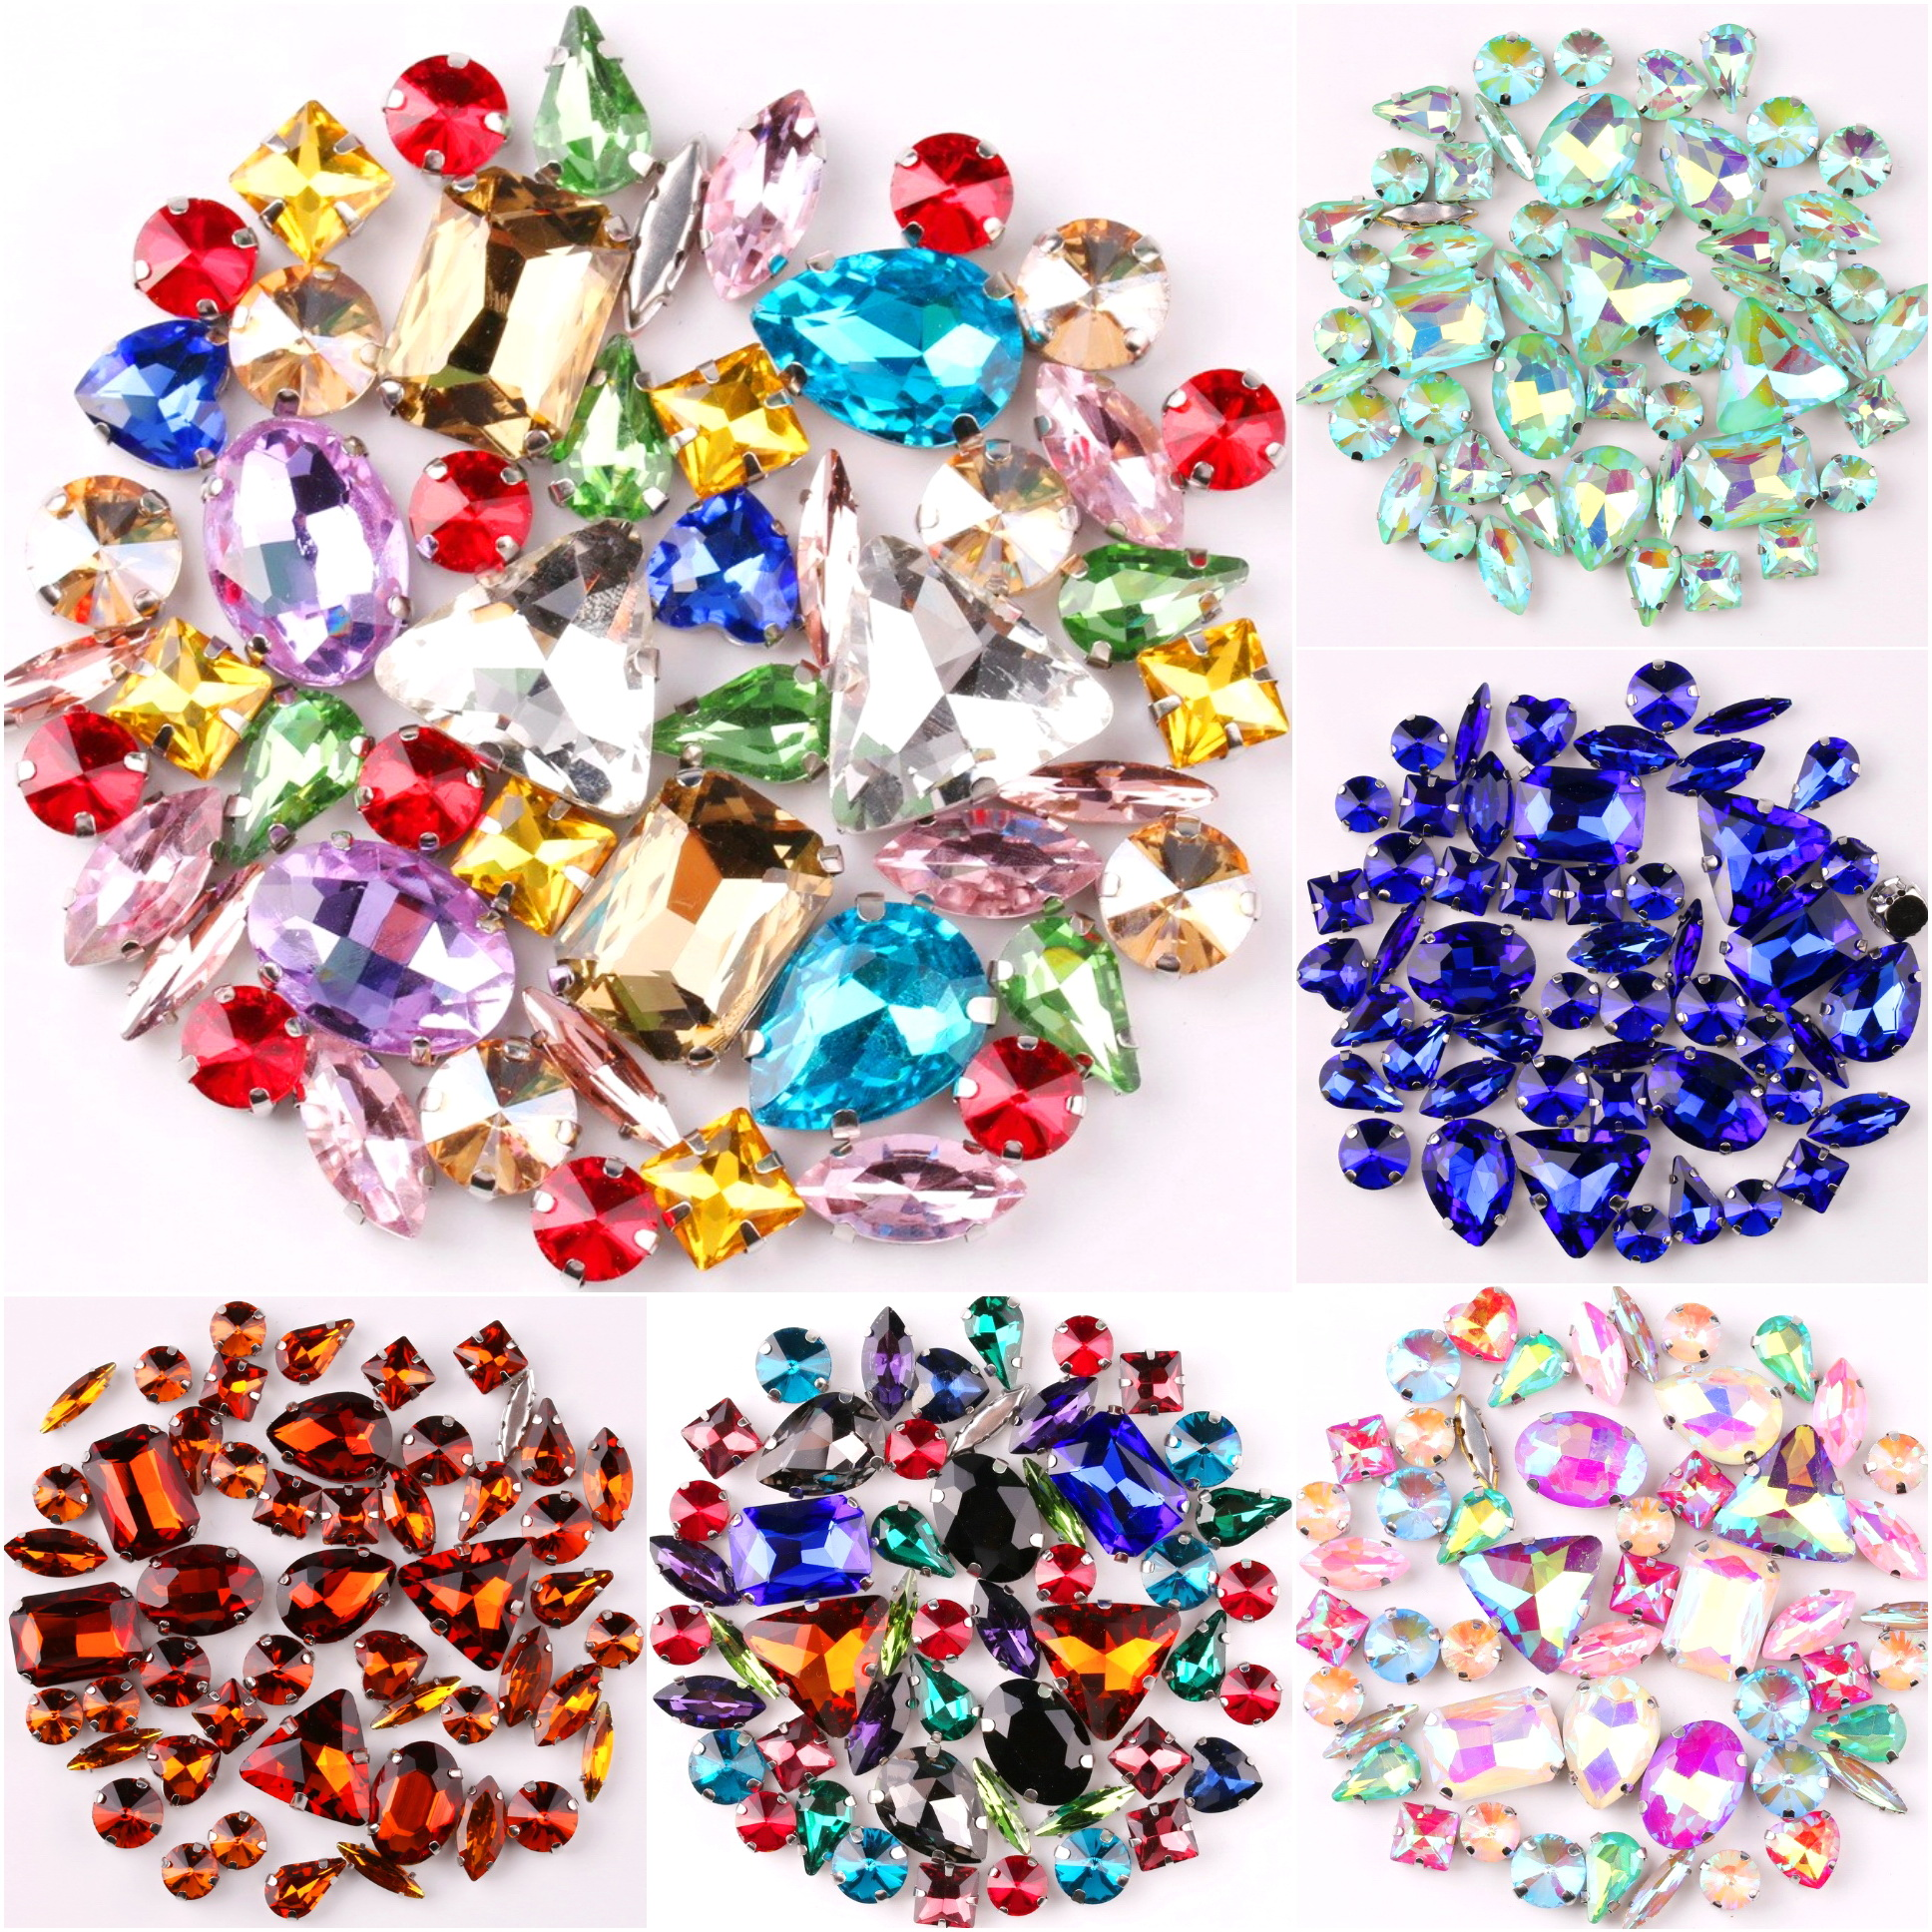 Silver Claw Setting 50Pcs/Bag Shapes Mix Clear &amp; Jelly Candy AB Glass <strong>Crystal</strong> Sew On Rhinestone